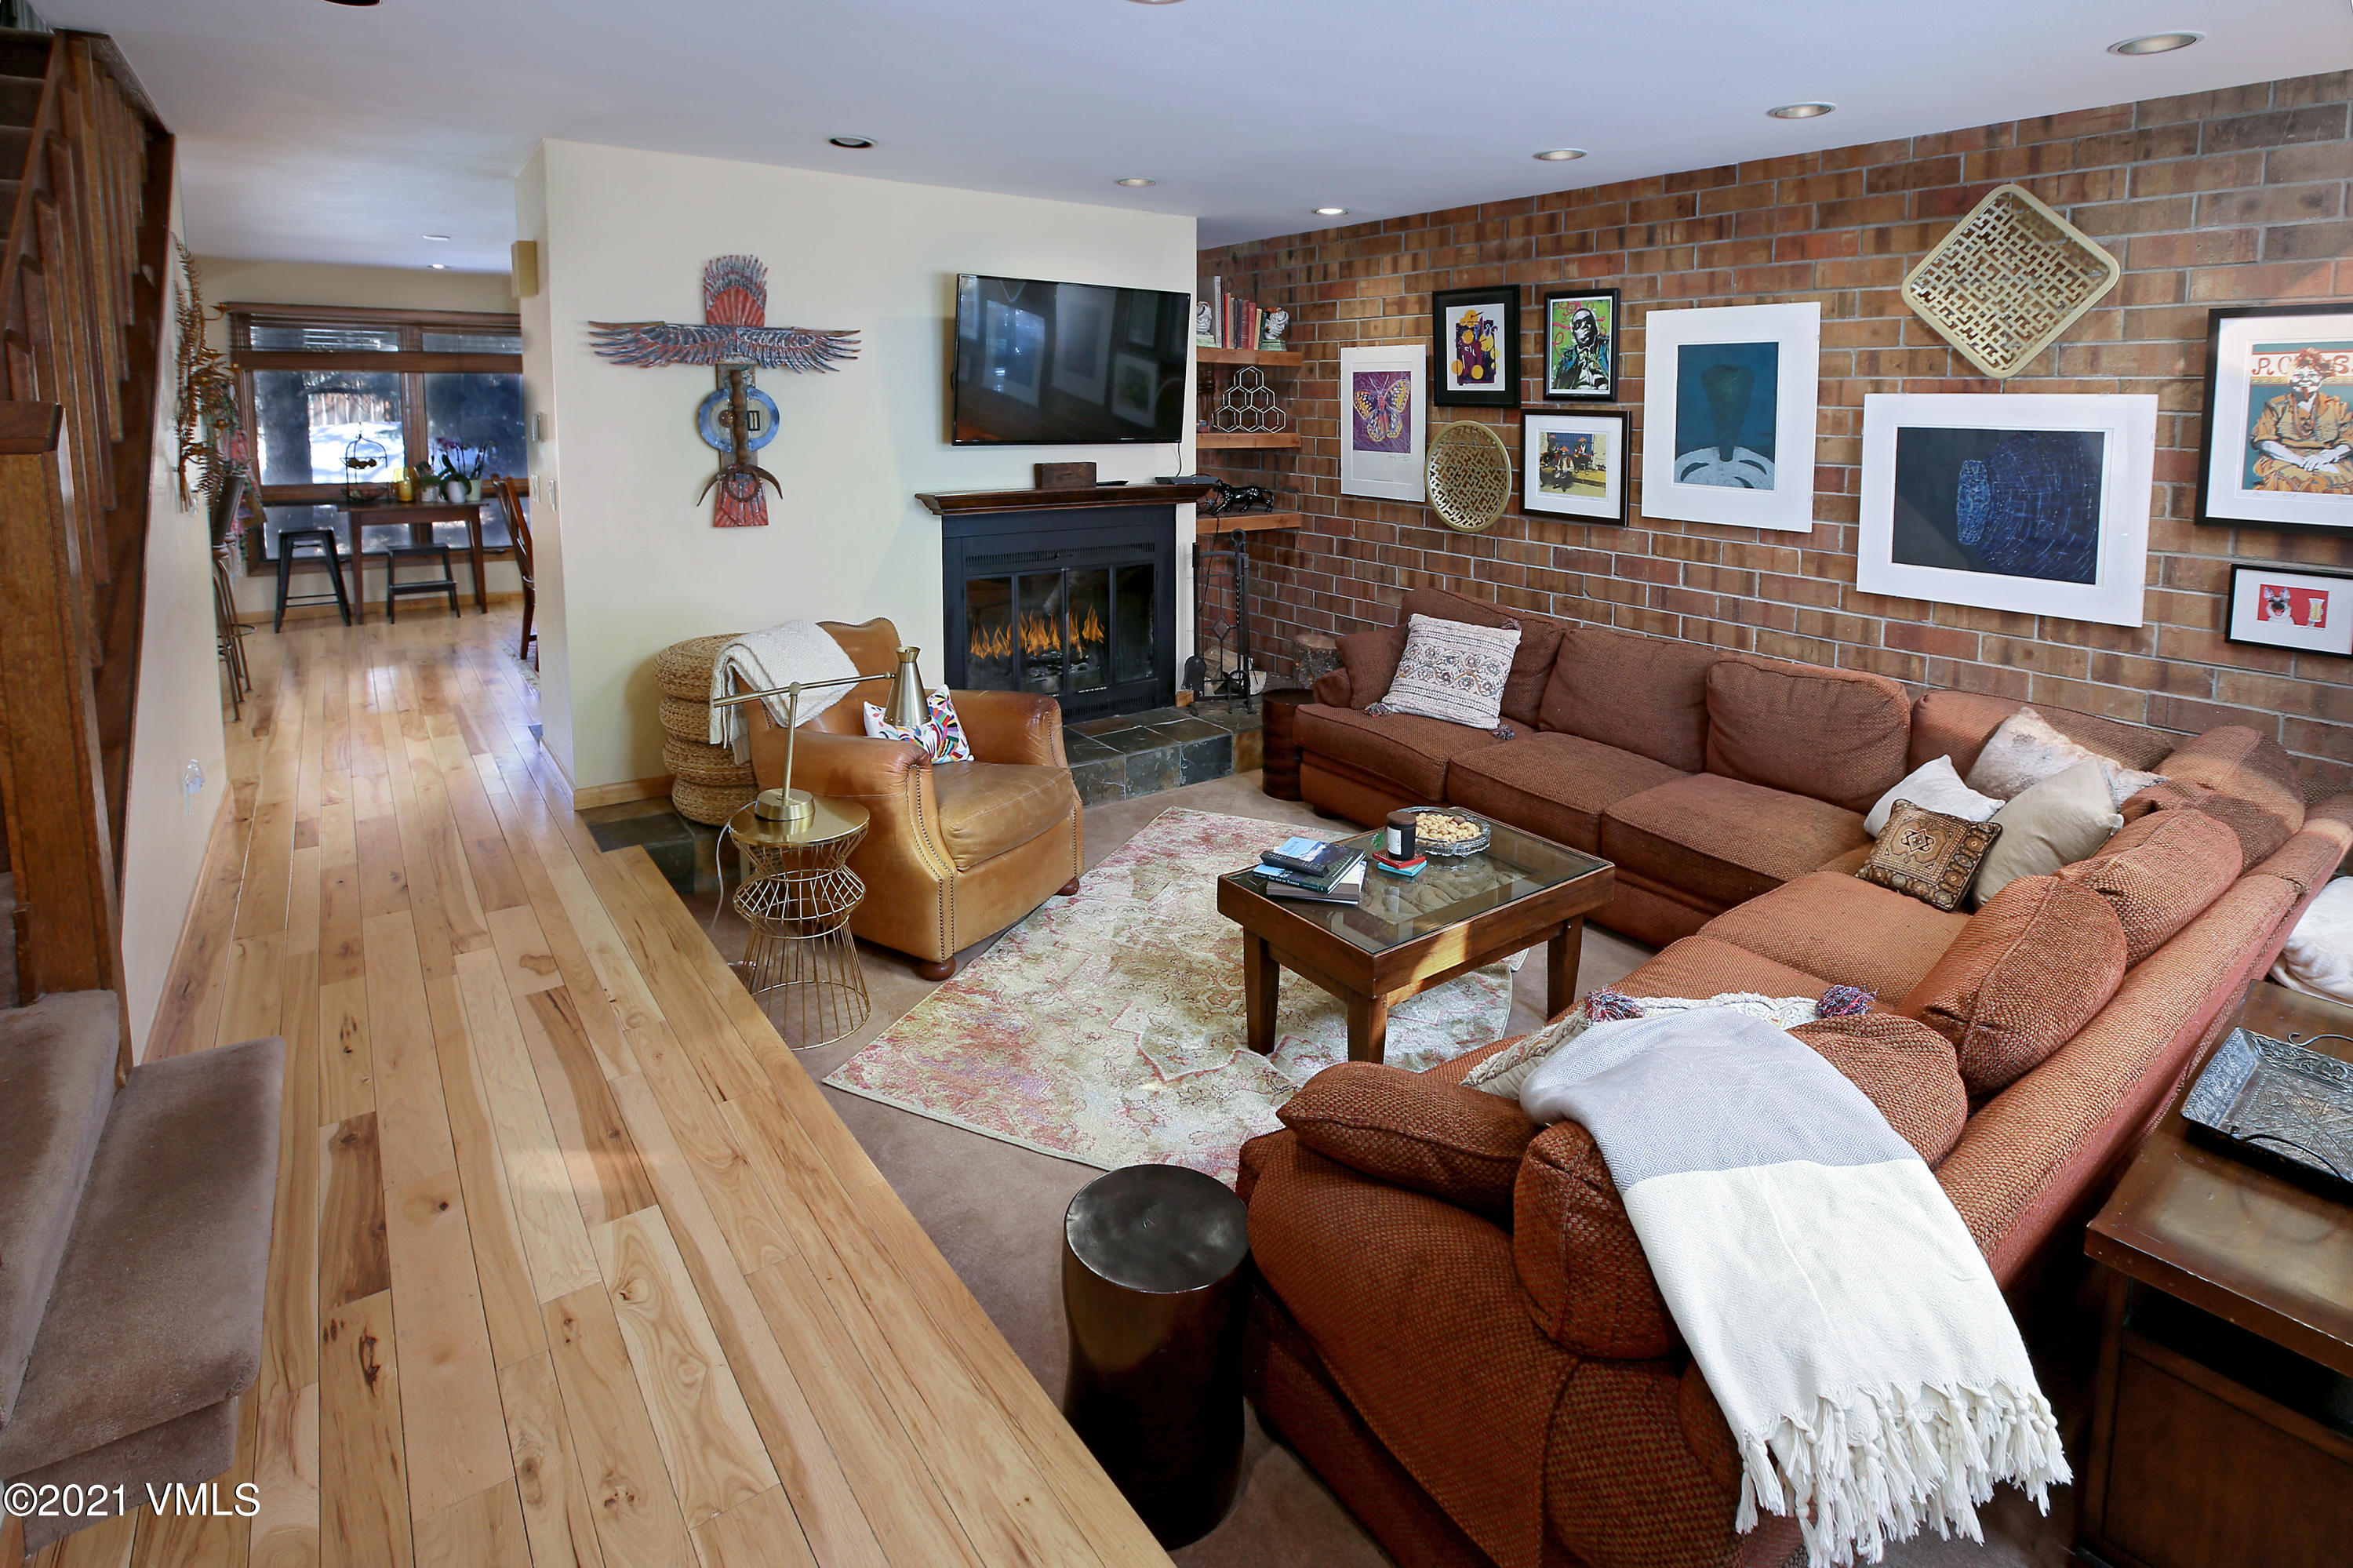 This inviting and spacious EagleVail home could be your mountain retreat. The residence offers large main-level living room with sky lights and wood-burning fireplace, which flows into a combination kitchen and dining room featuring granite countertops and hardwood flooring. Additional main-level features include powder room and an entrance to the fenced-in backyard, complete with doggie door. Upstairs provides the primary bedroom and bathroom with vaulted ceilings, and additional 2-bedrooms and bathroom. Finished basement with 6 built-in bunkbeds offer plenty of sleeping room. Ideal location between Vail and Beaver Creek resorts, across the street from EagleVail golf course and in close proximity to the ECO bus stop.